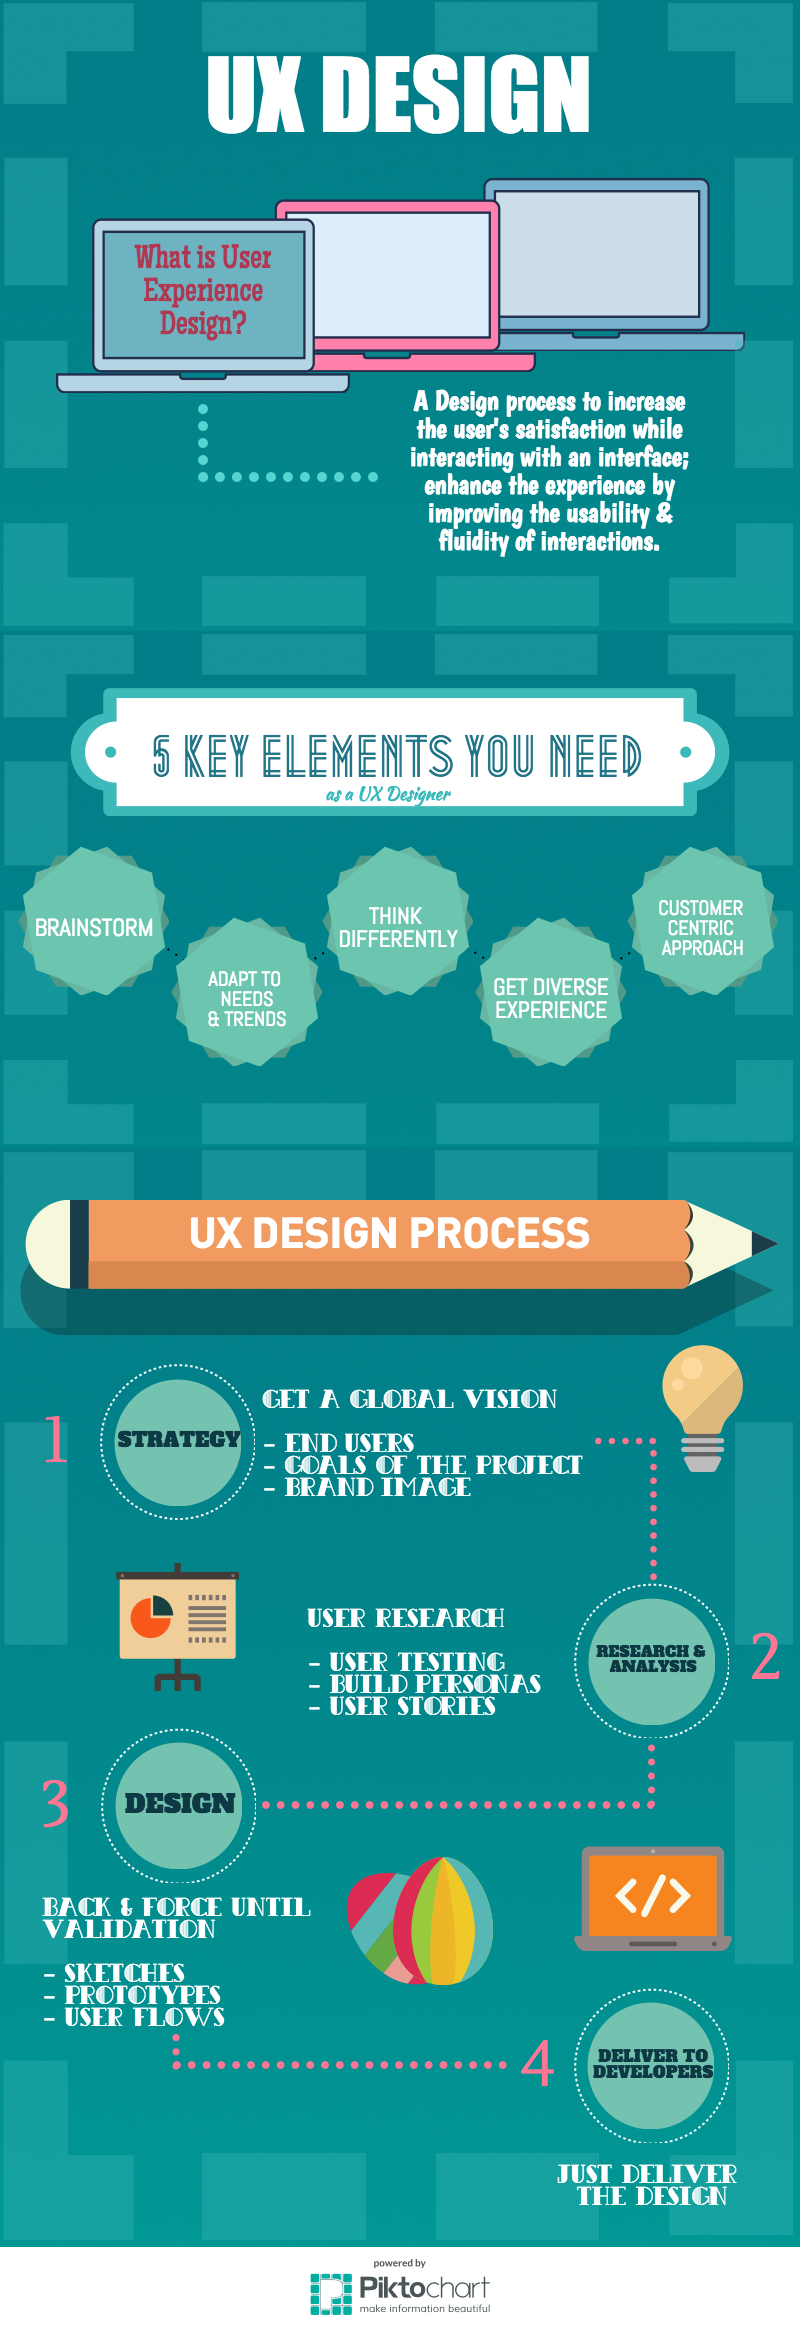 what-is-user-experience-design-infographic.png